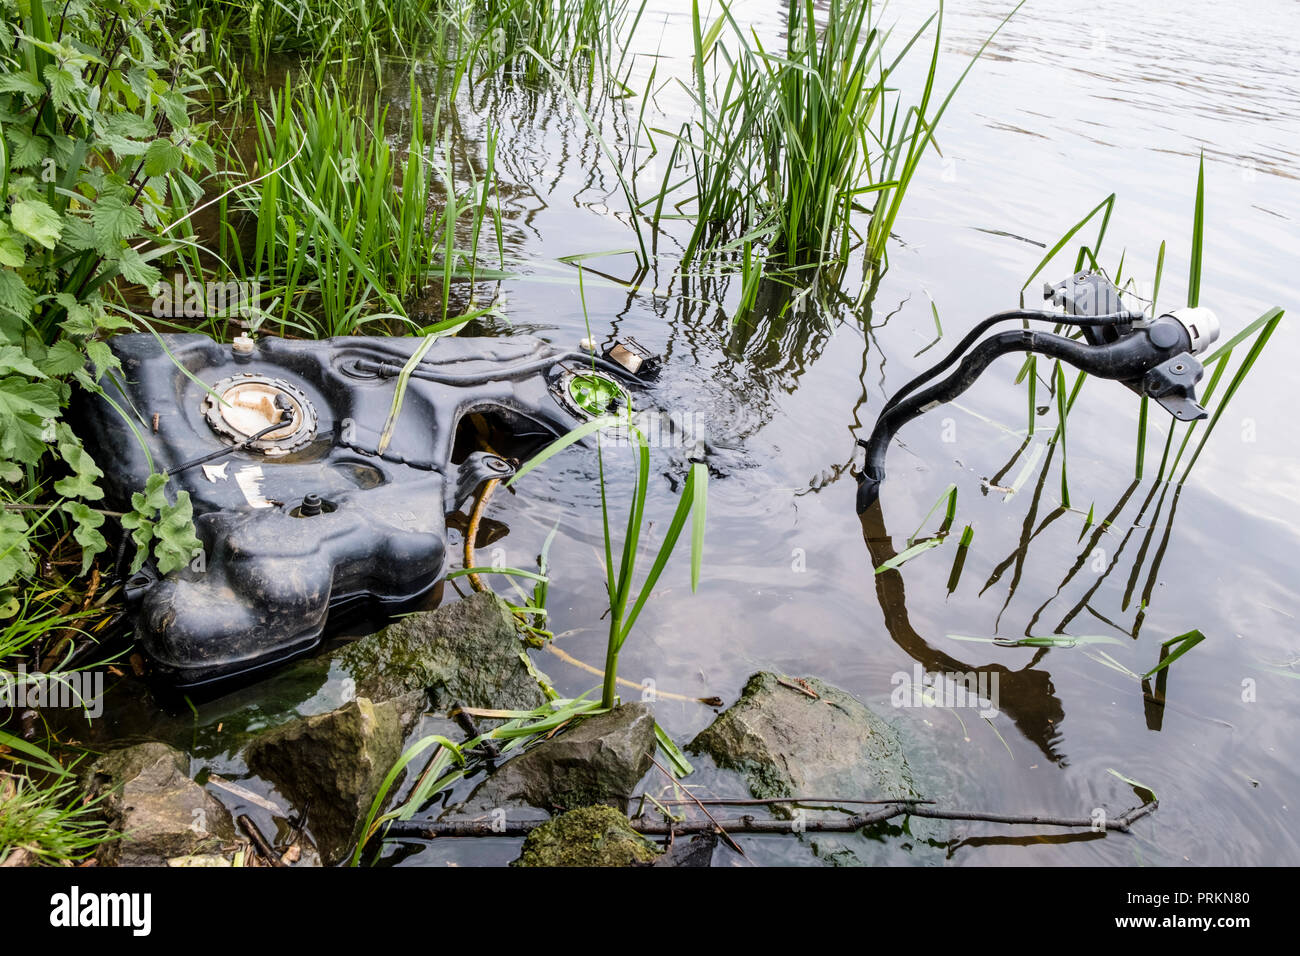 River pollution. Abandoned machinery dumped in the River Trent, Nottinghamshire, England, UK Stock Photo